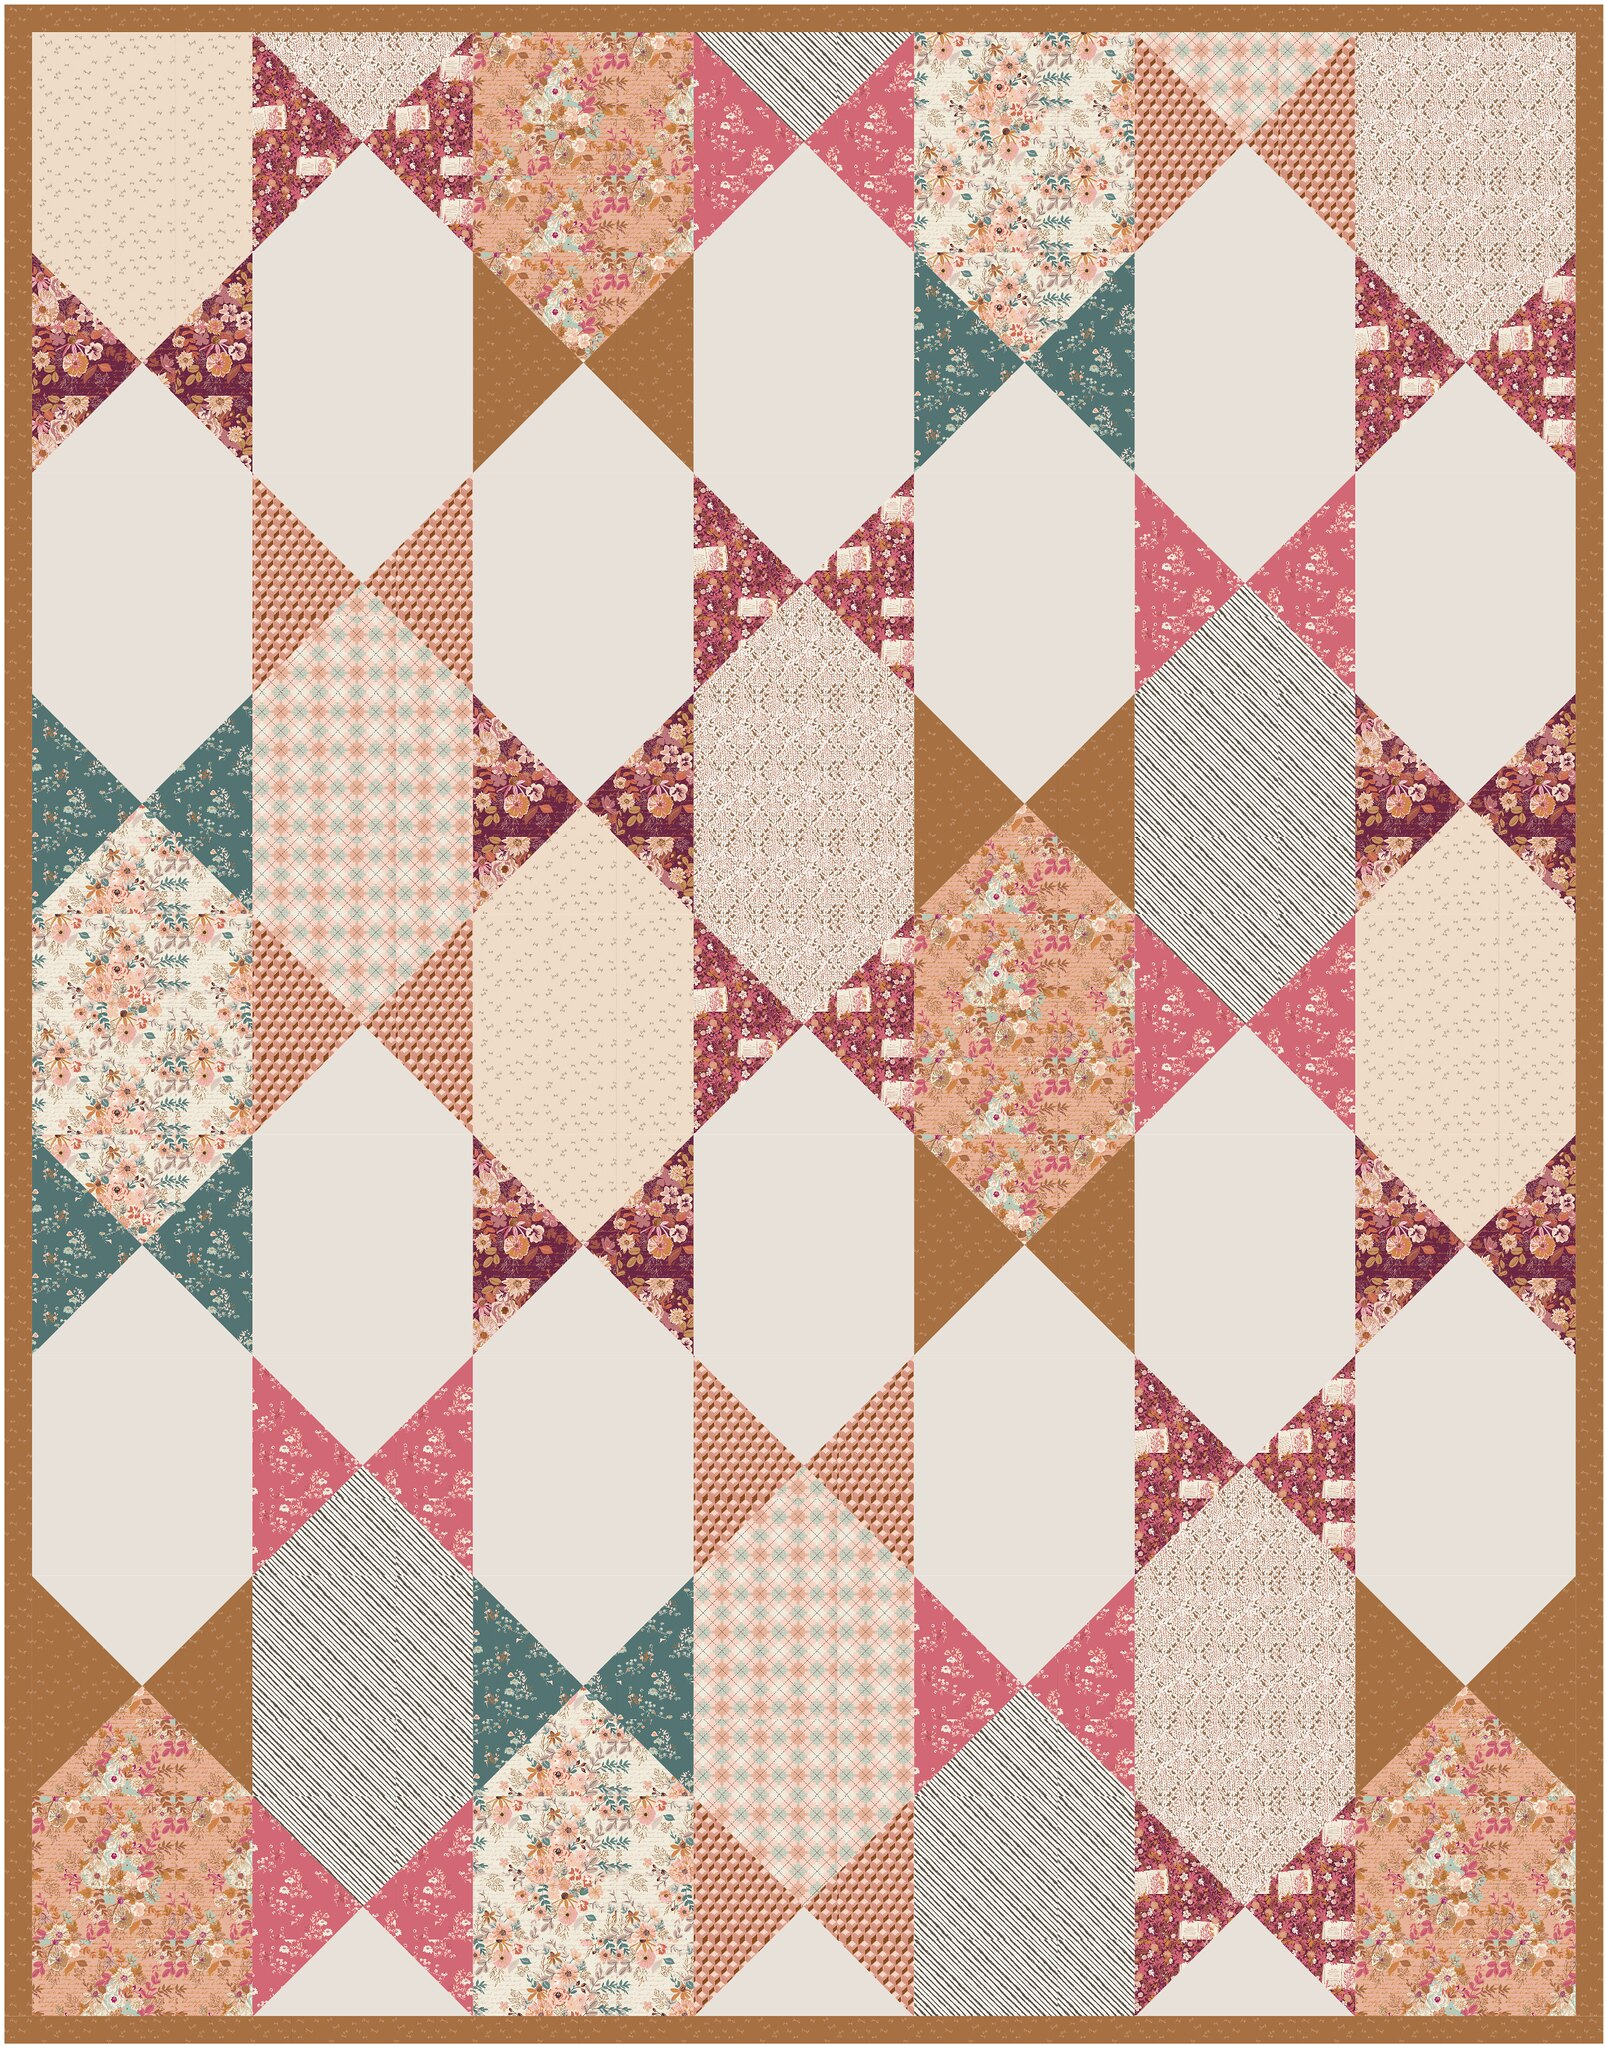 The Abigail Quilt in Bookish - Kitchen Table Quilting